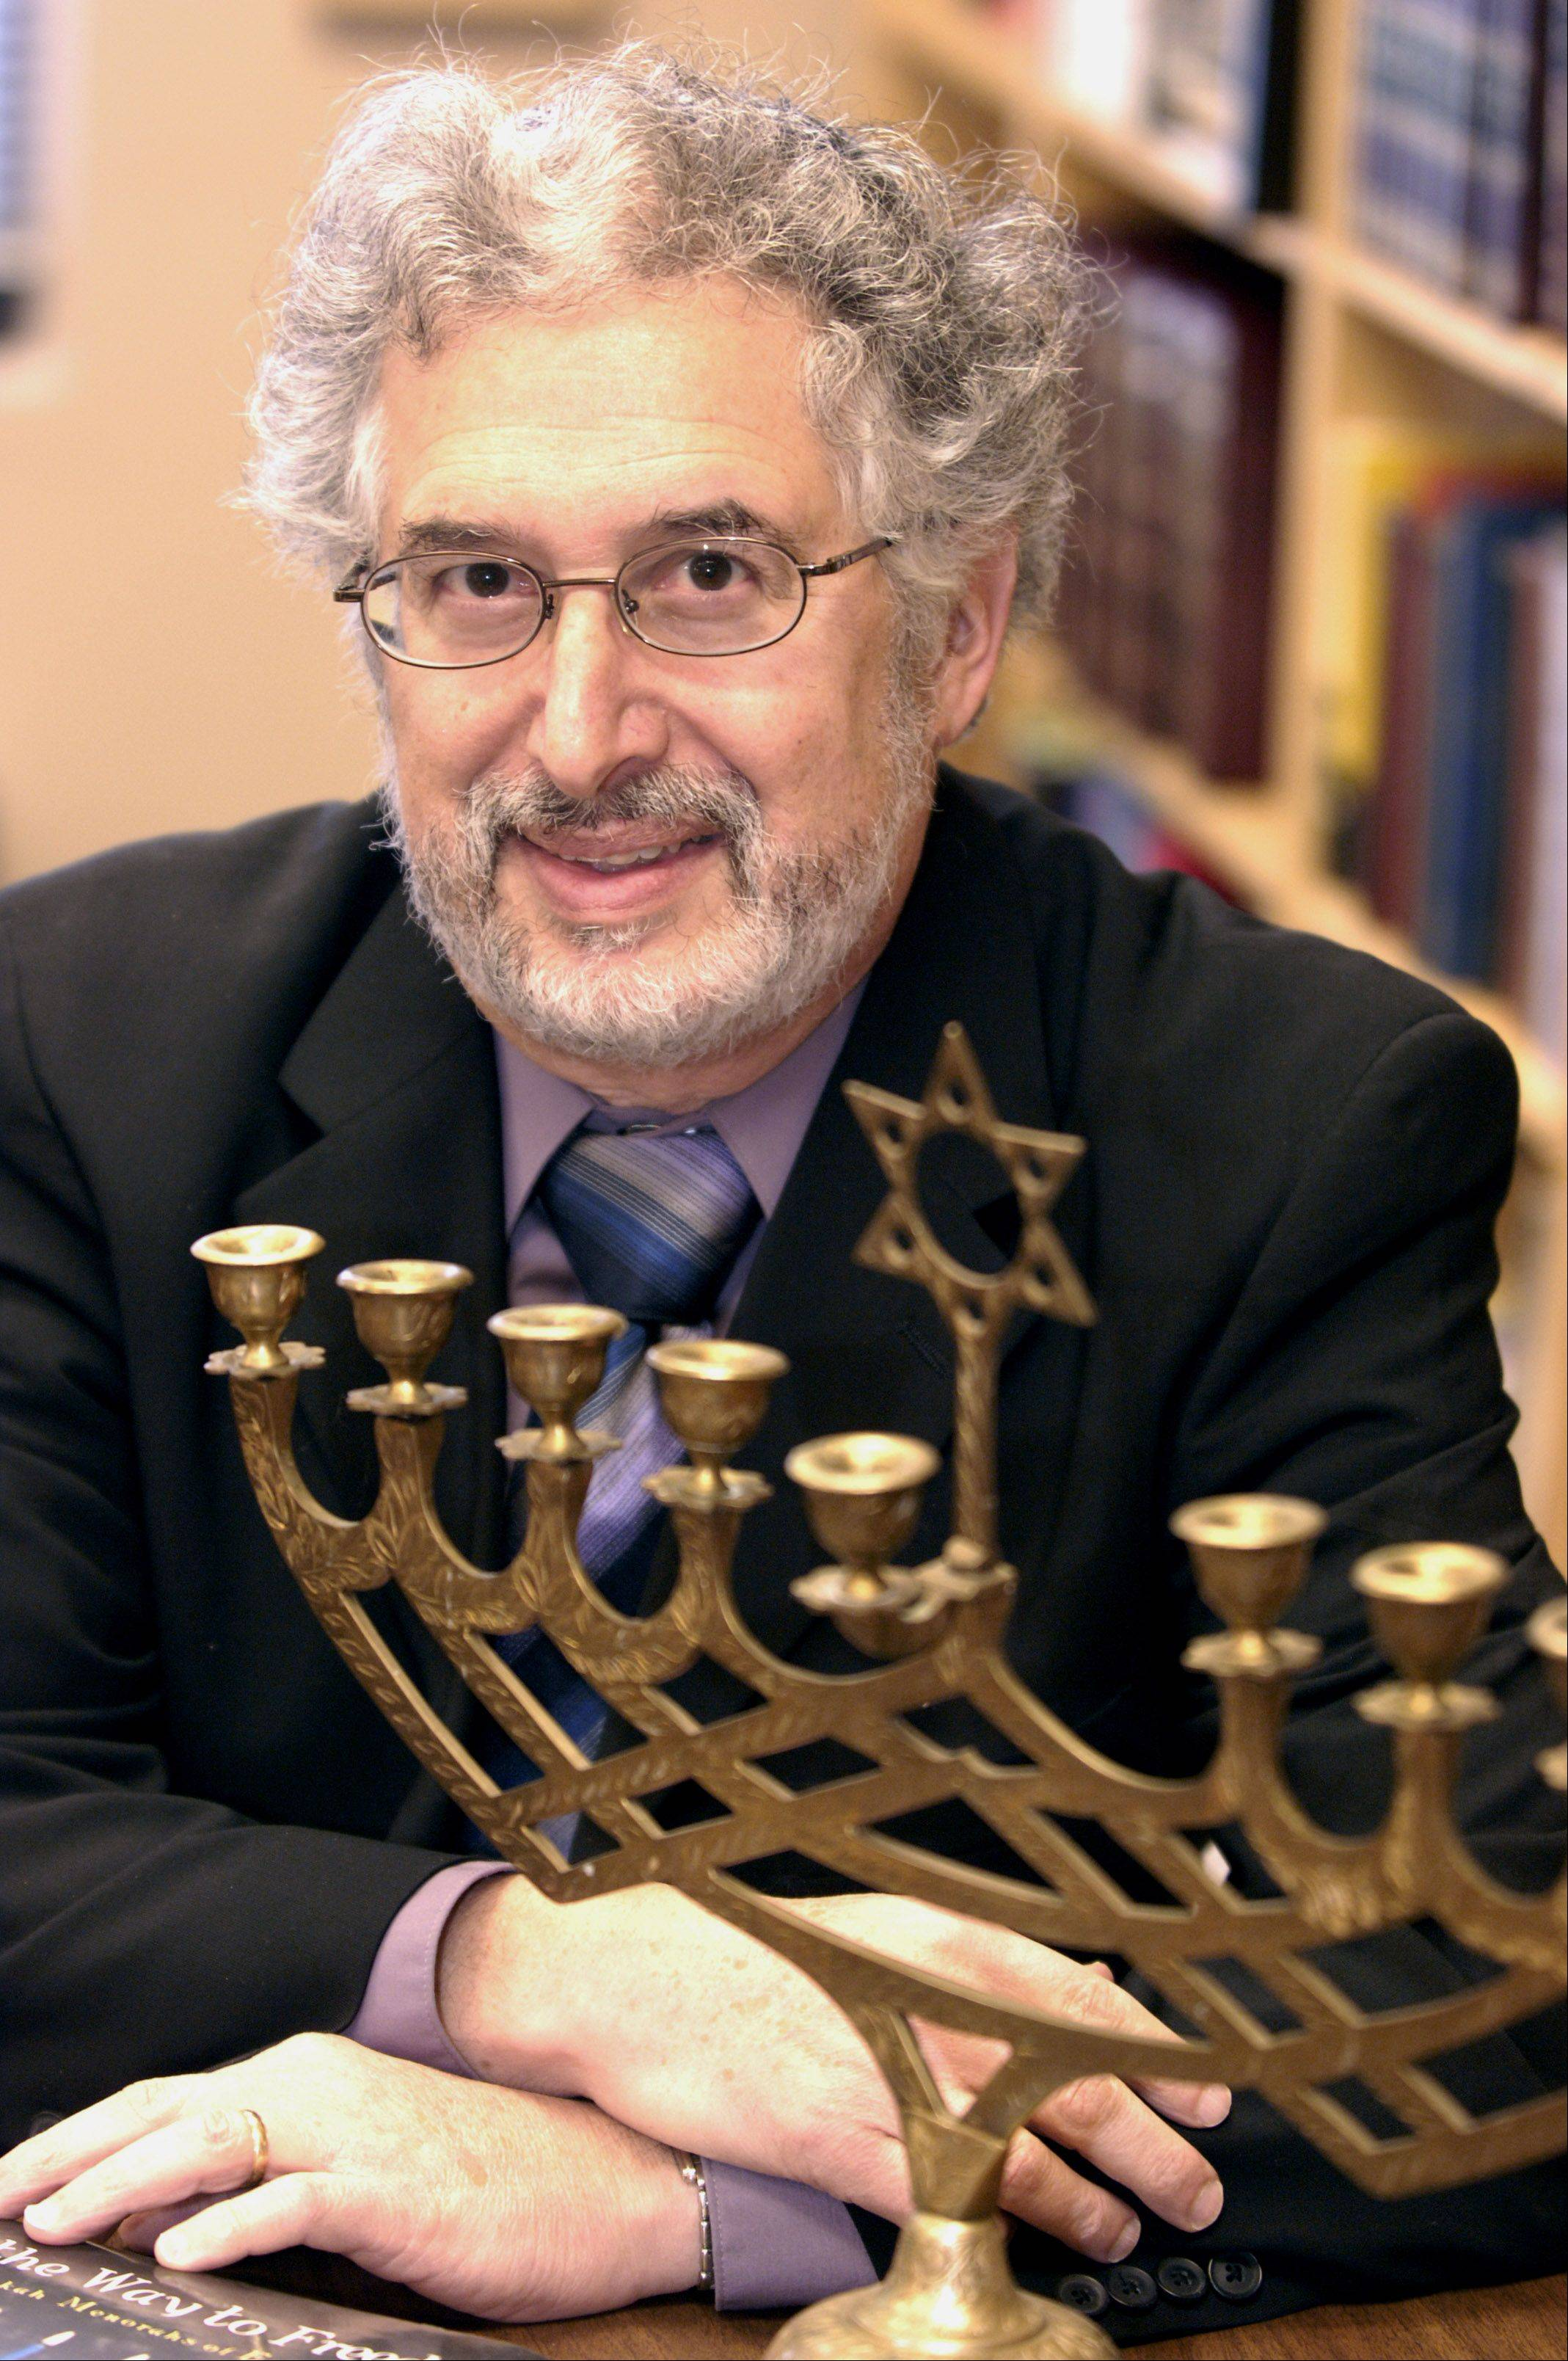 Rabbi Marc Rudolph of Congregation Beth Shalom in Naperville is preparing for the start of Hanukkah Tuesday night.